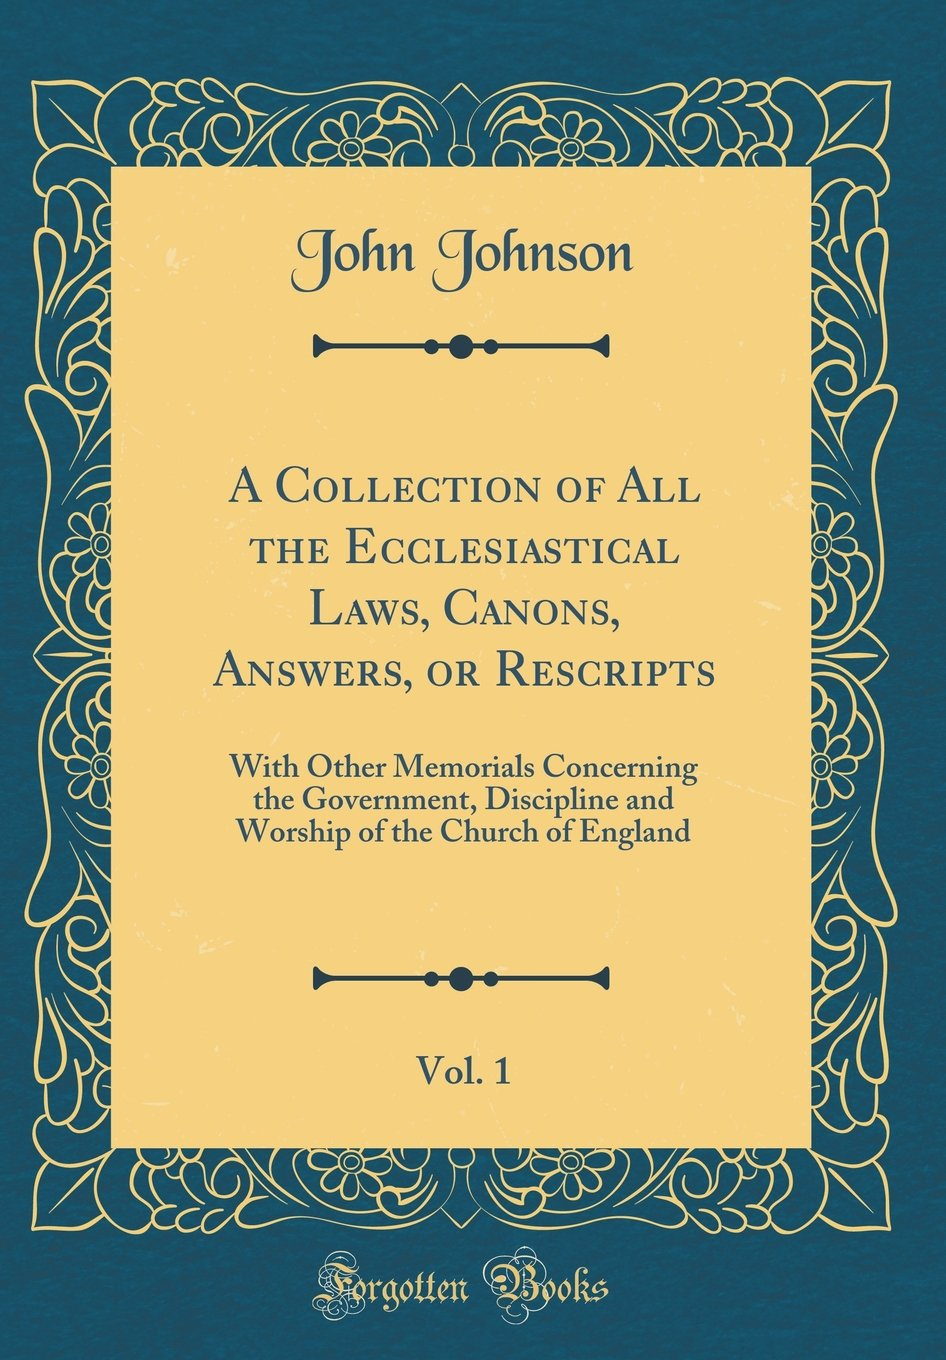 Read Online A Collection of All the Ecclesiastical Laws, Canons, Answers, or Rescripts, Vol. 1: With Other Memorials Concerning the Government, Discipline and Worship of the Church of England (Classic Reprint) pdf